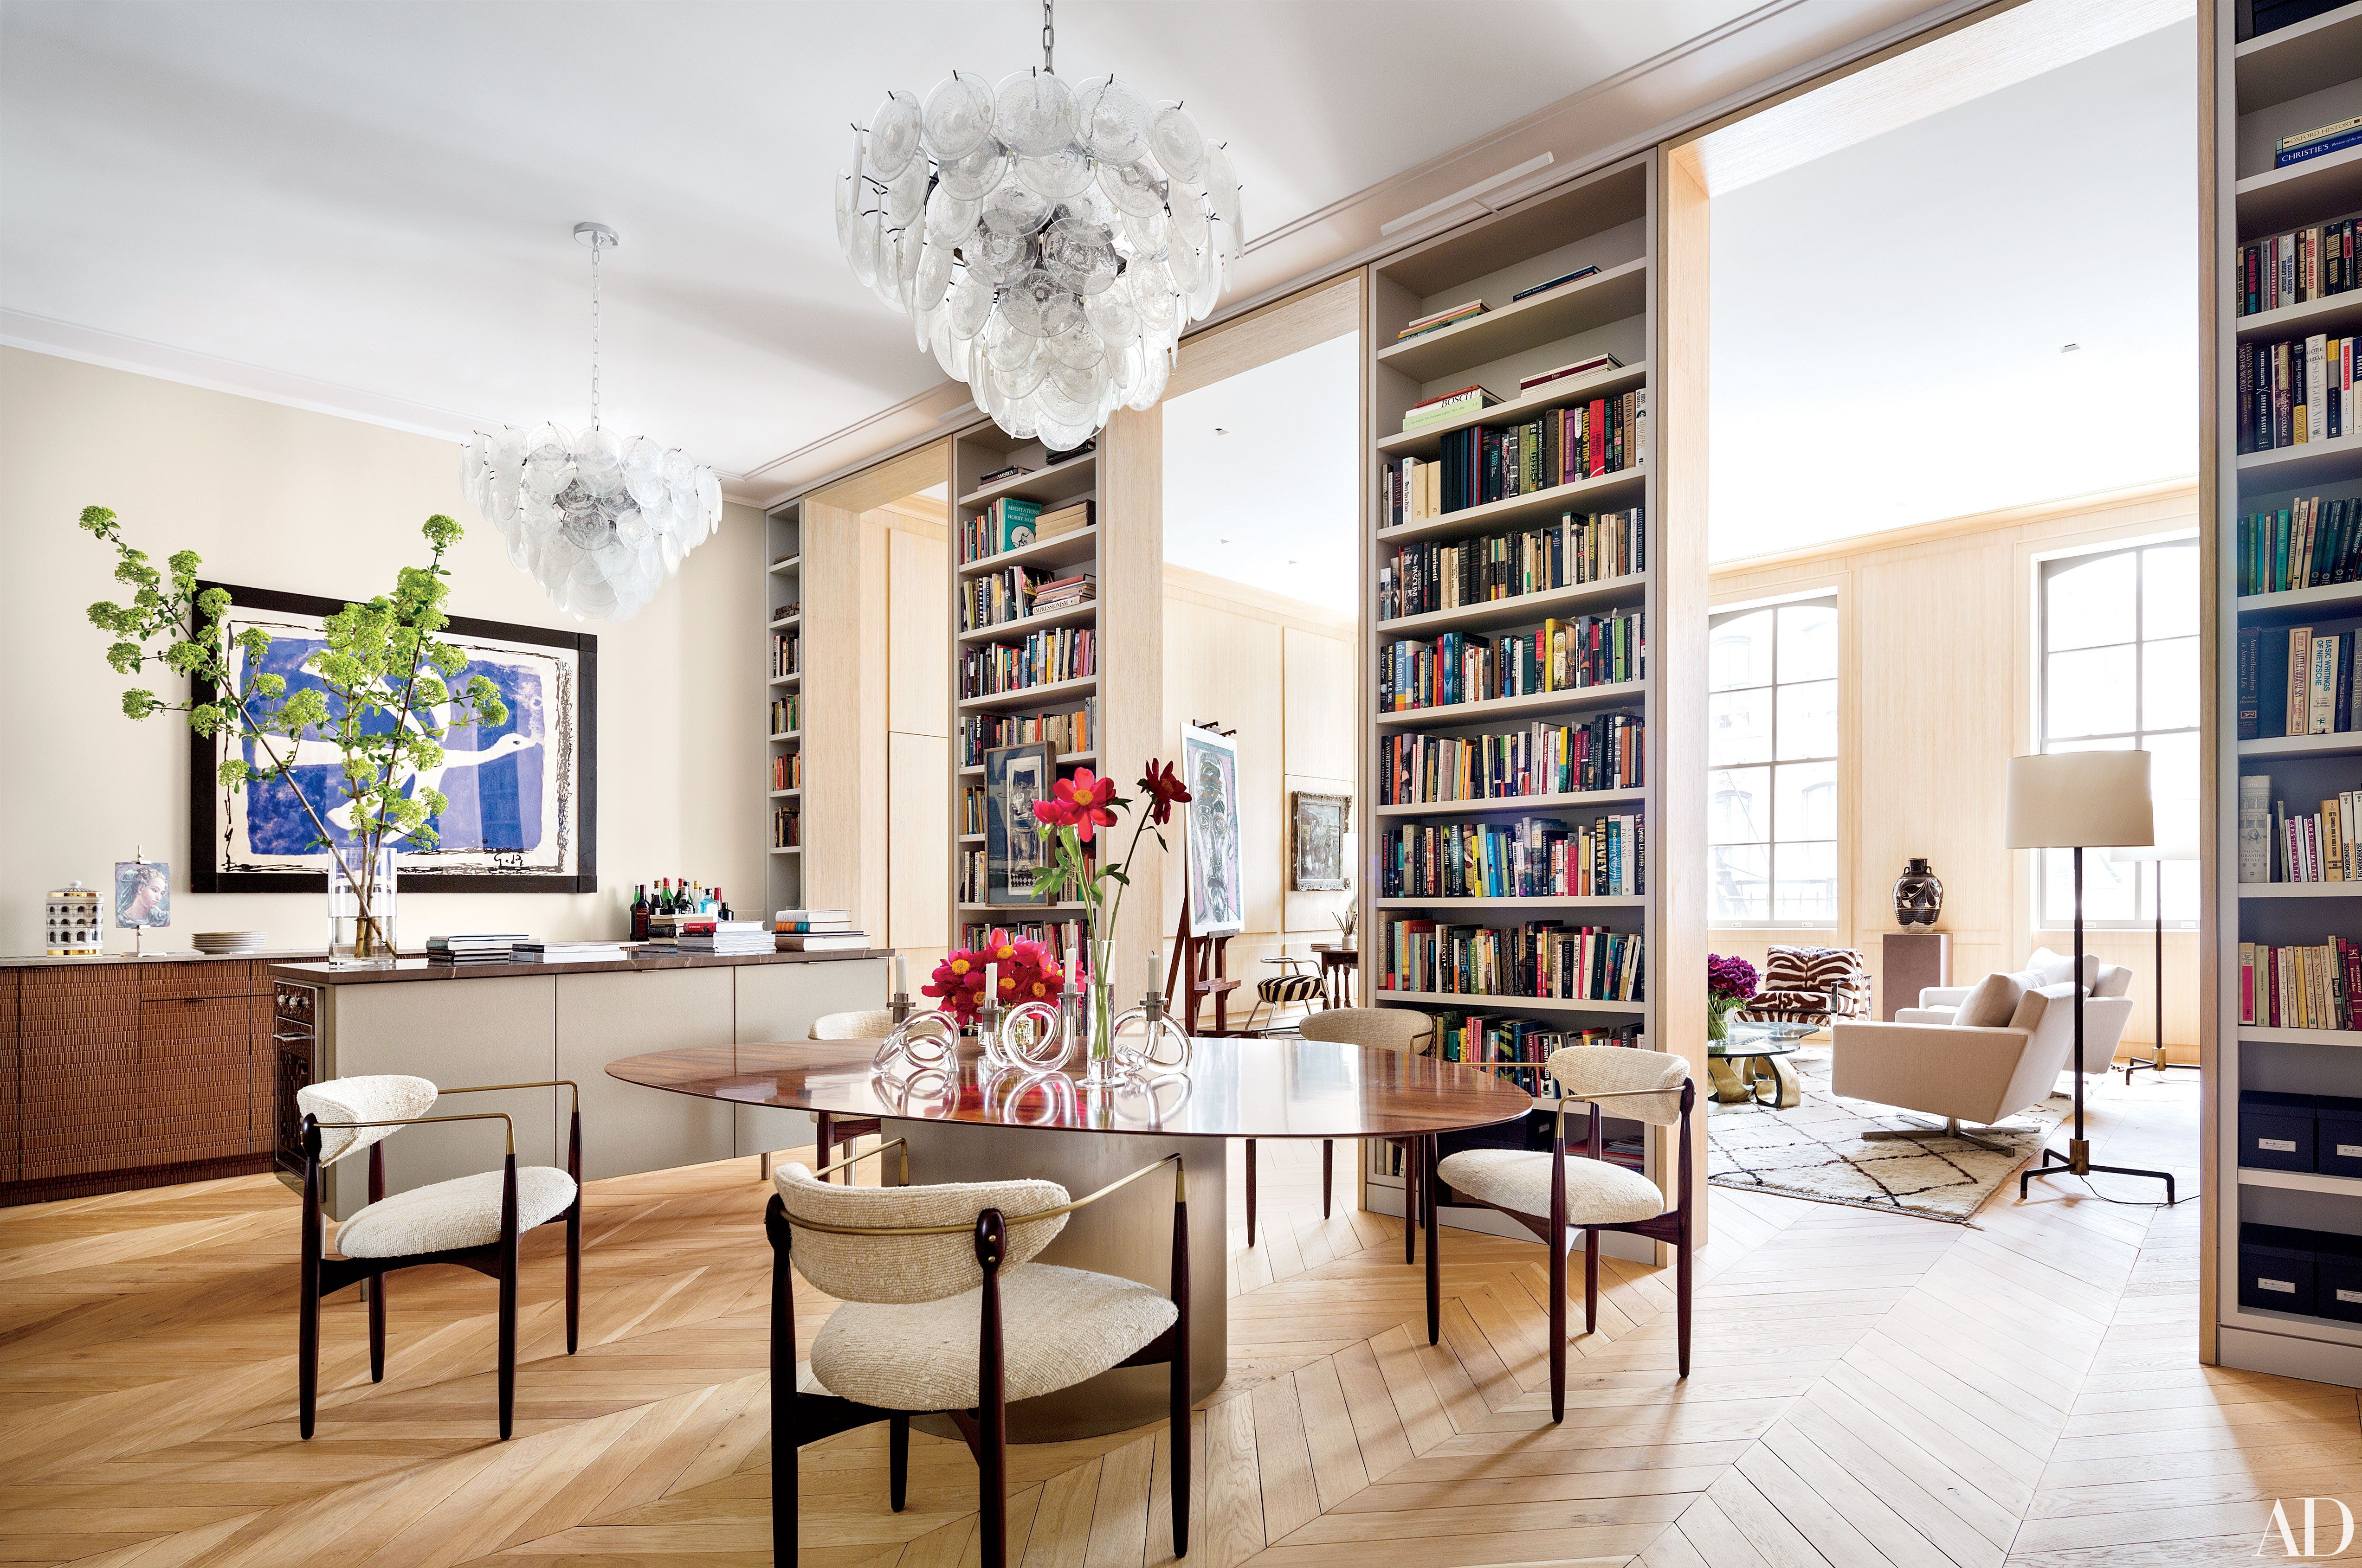 In the New York City loft of architect Steven Harris and interior designer Lucien Rees Roberts, monumental bookshelves delineate the living and dining areas, which feature a 1960 Georges Braque print (at left) and Ib Kofod-Larsen chairs at the Rees Roberts + Partners dining table.